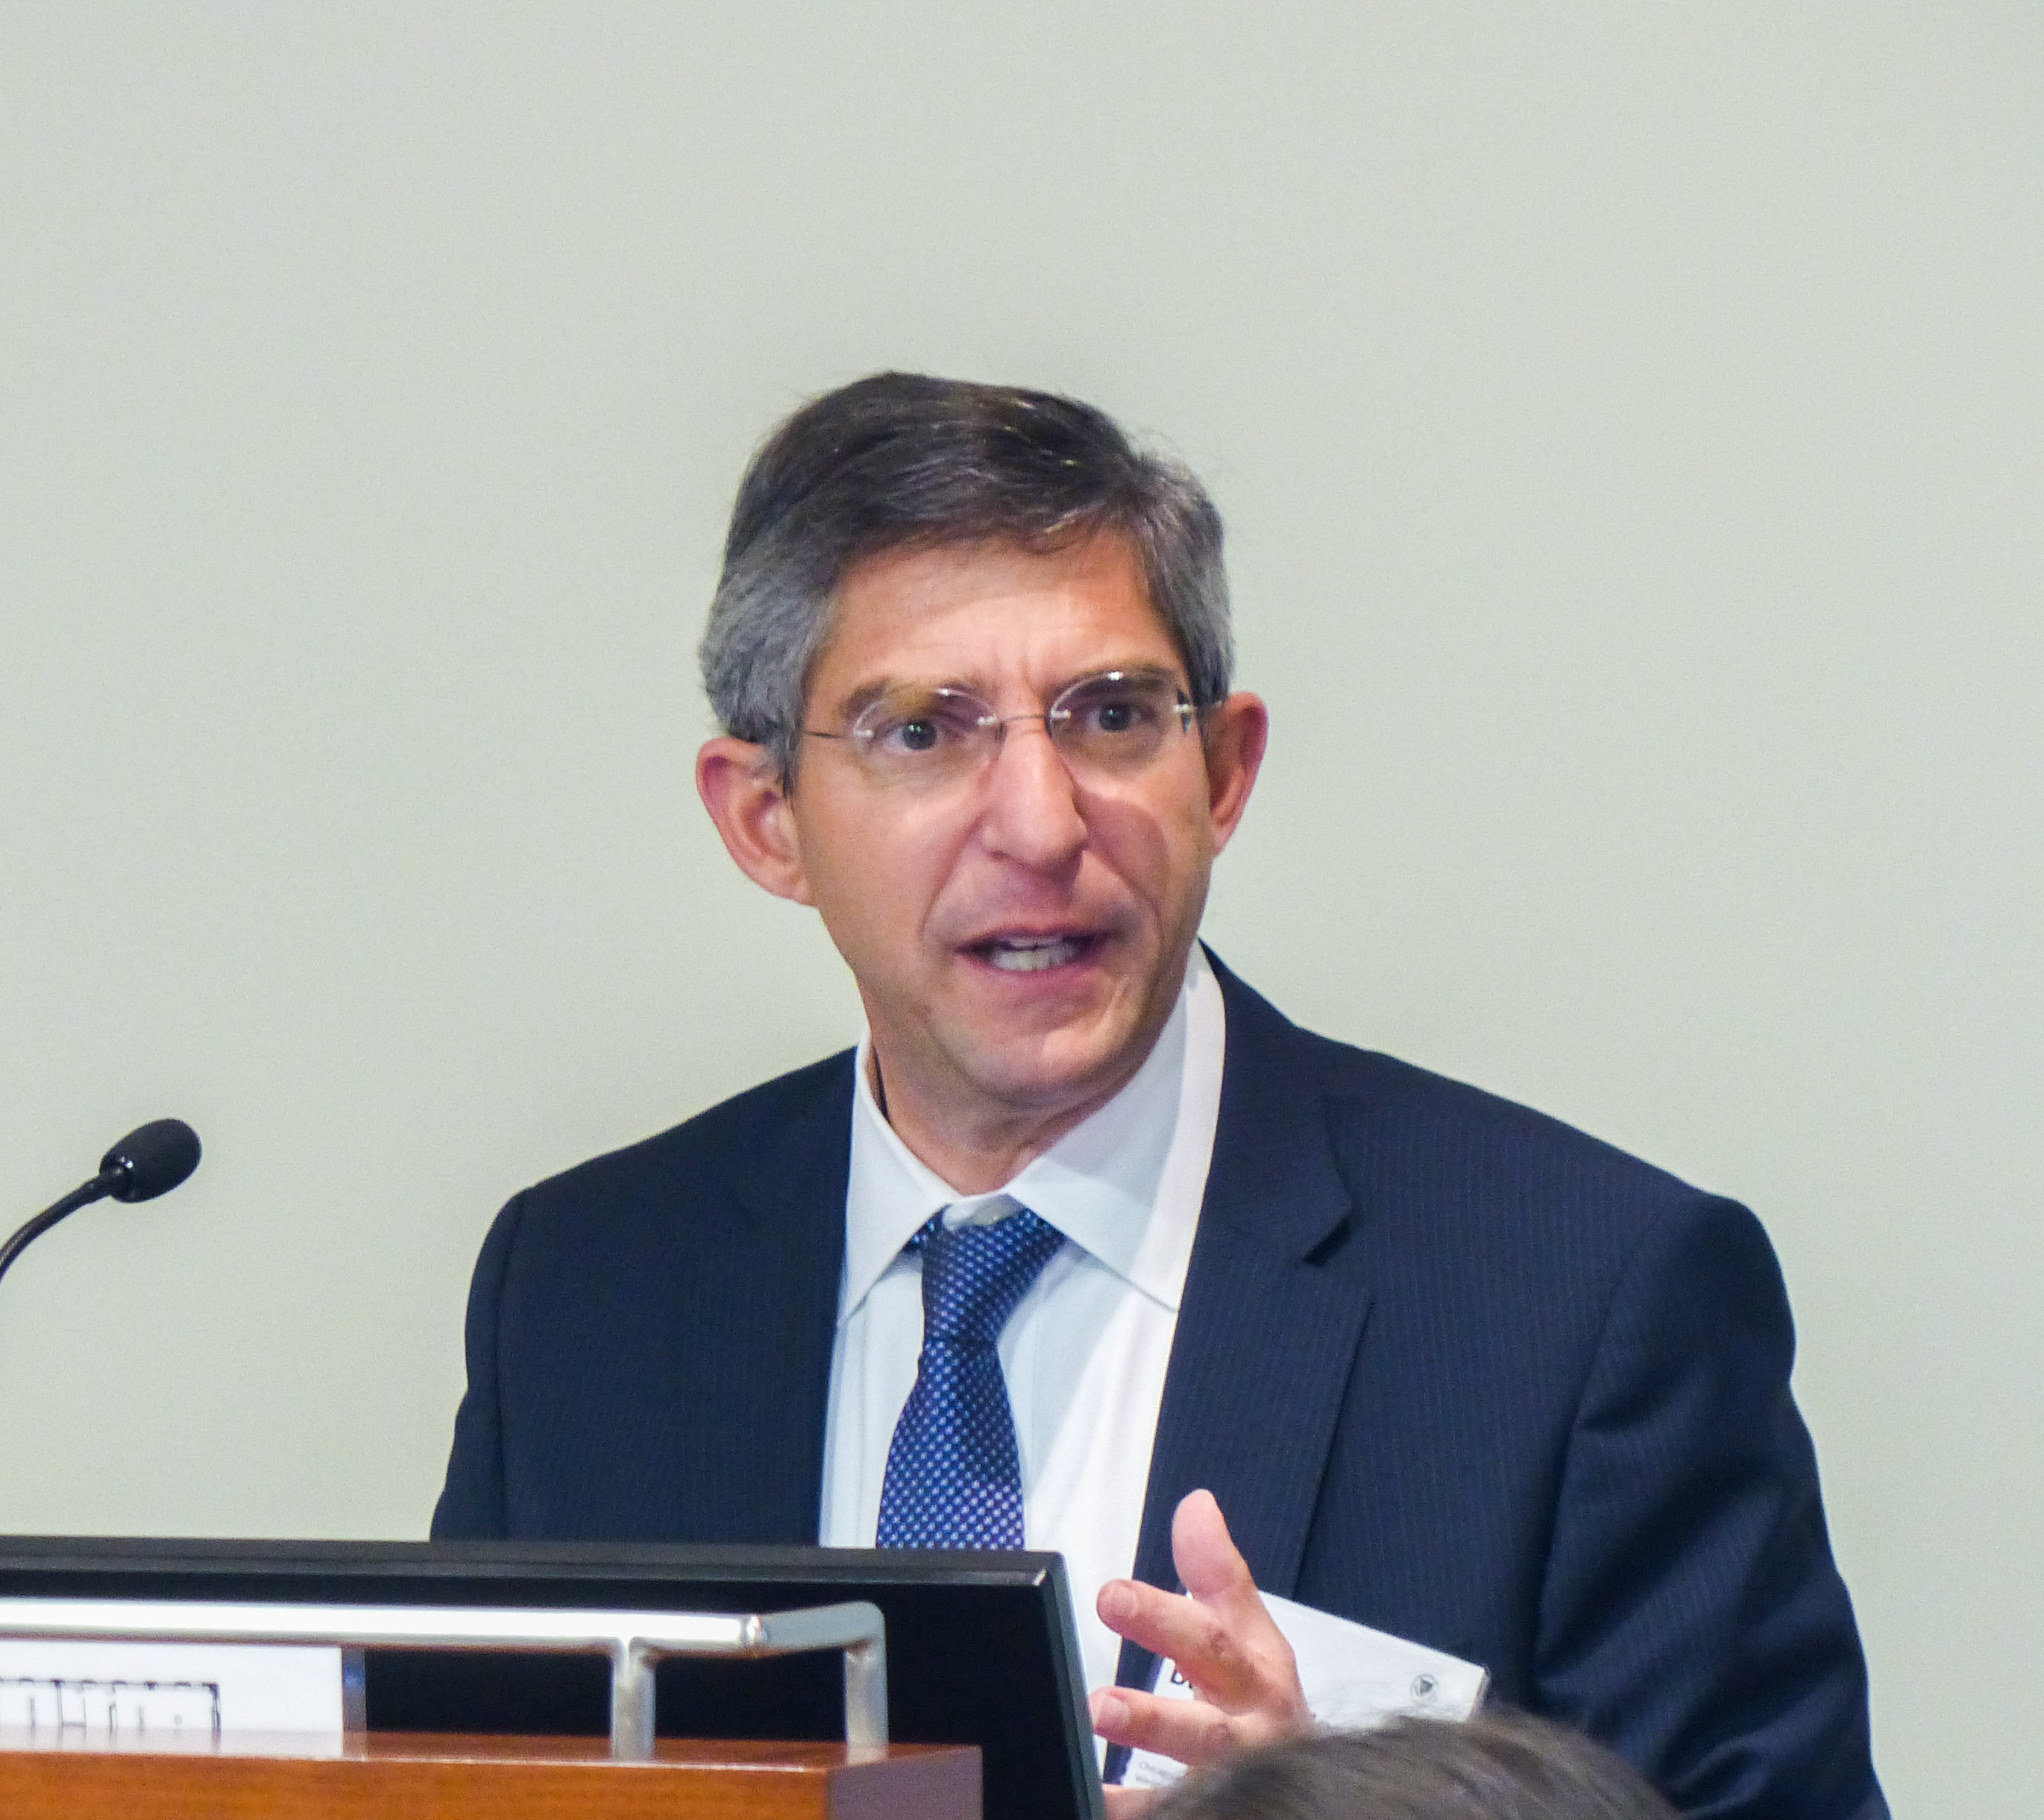 David Snyder, Federal Reserve Bank of Chicago, Civic Federation